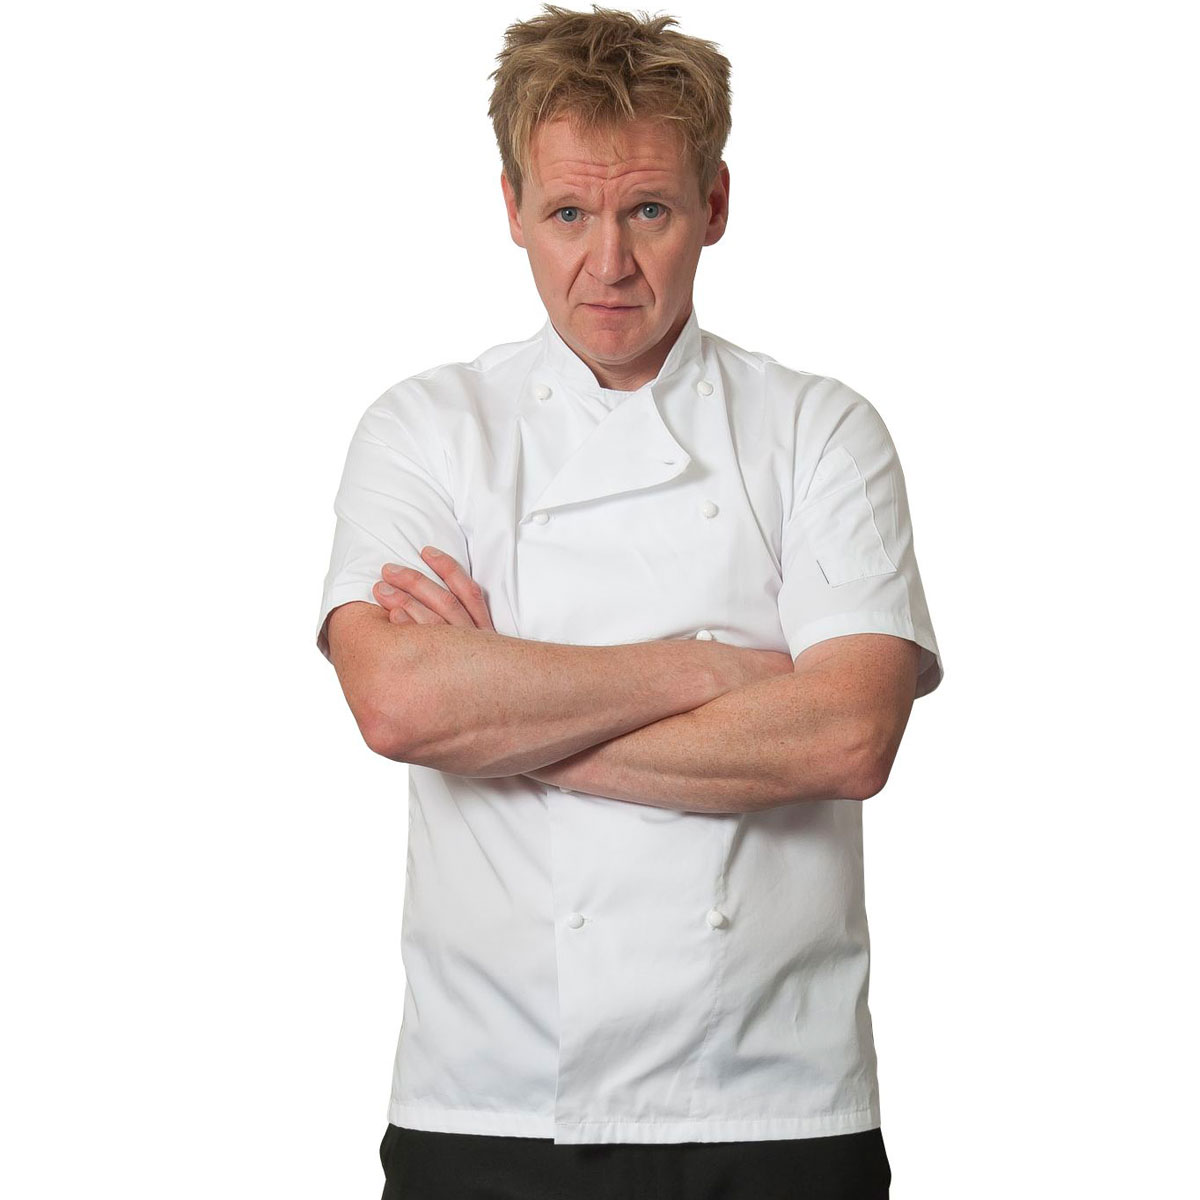 Hire the Gordon Ramsay lookalike from Channel 4's Lookalikes show